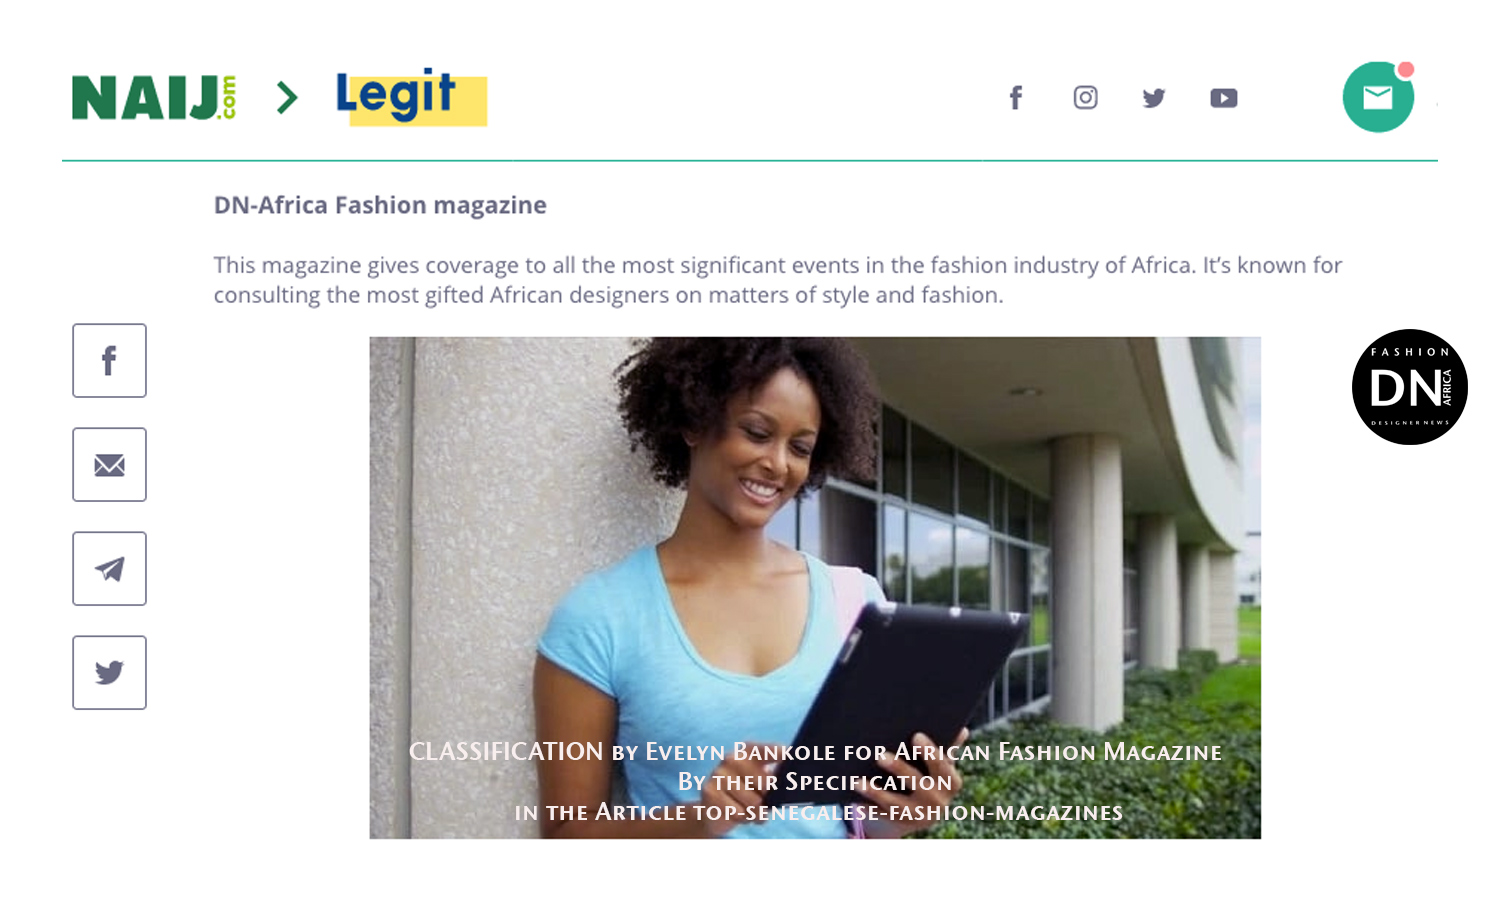 AFRICAN FASHION STYLE MAGAZINE - DN-Africa-Fashion-magazine-Articl-by-Evelyn-Bankole-Read-more-on-legit.ng-top-senegalese-fashion-magazines - Official Media Partner DN AFRICA -STUDIO 24 NIGERIA - STUDIO 24 INTERNATIONAL - Ifeanyi Christopher Oputa MD AND CEO OF COLVI LIMITED AND STUDIO 24 - CAMERA TEAM JAMWAXX